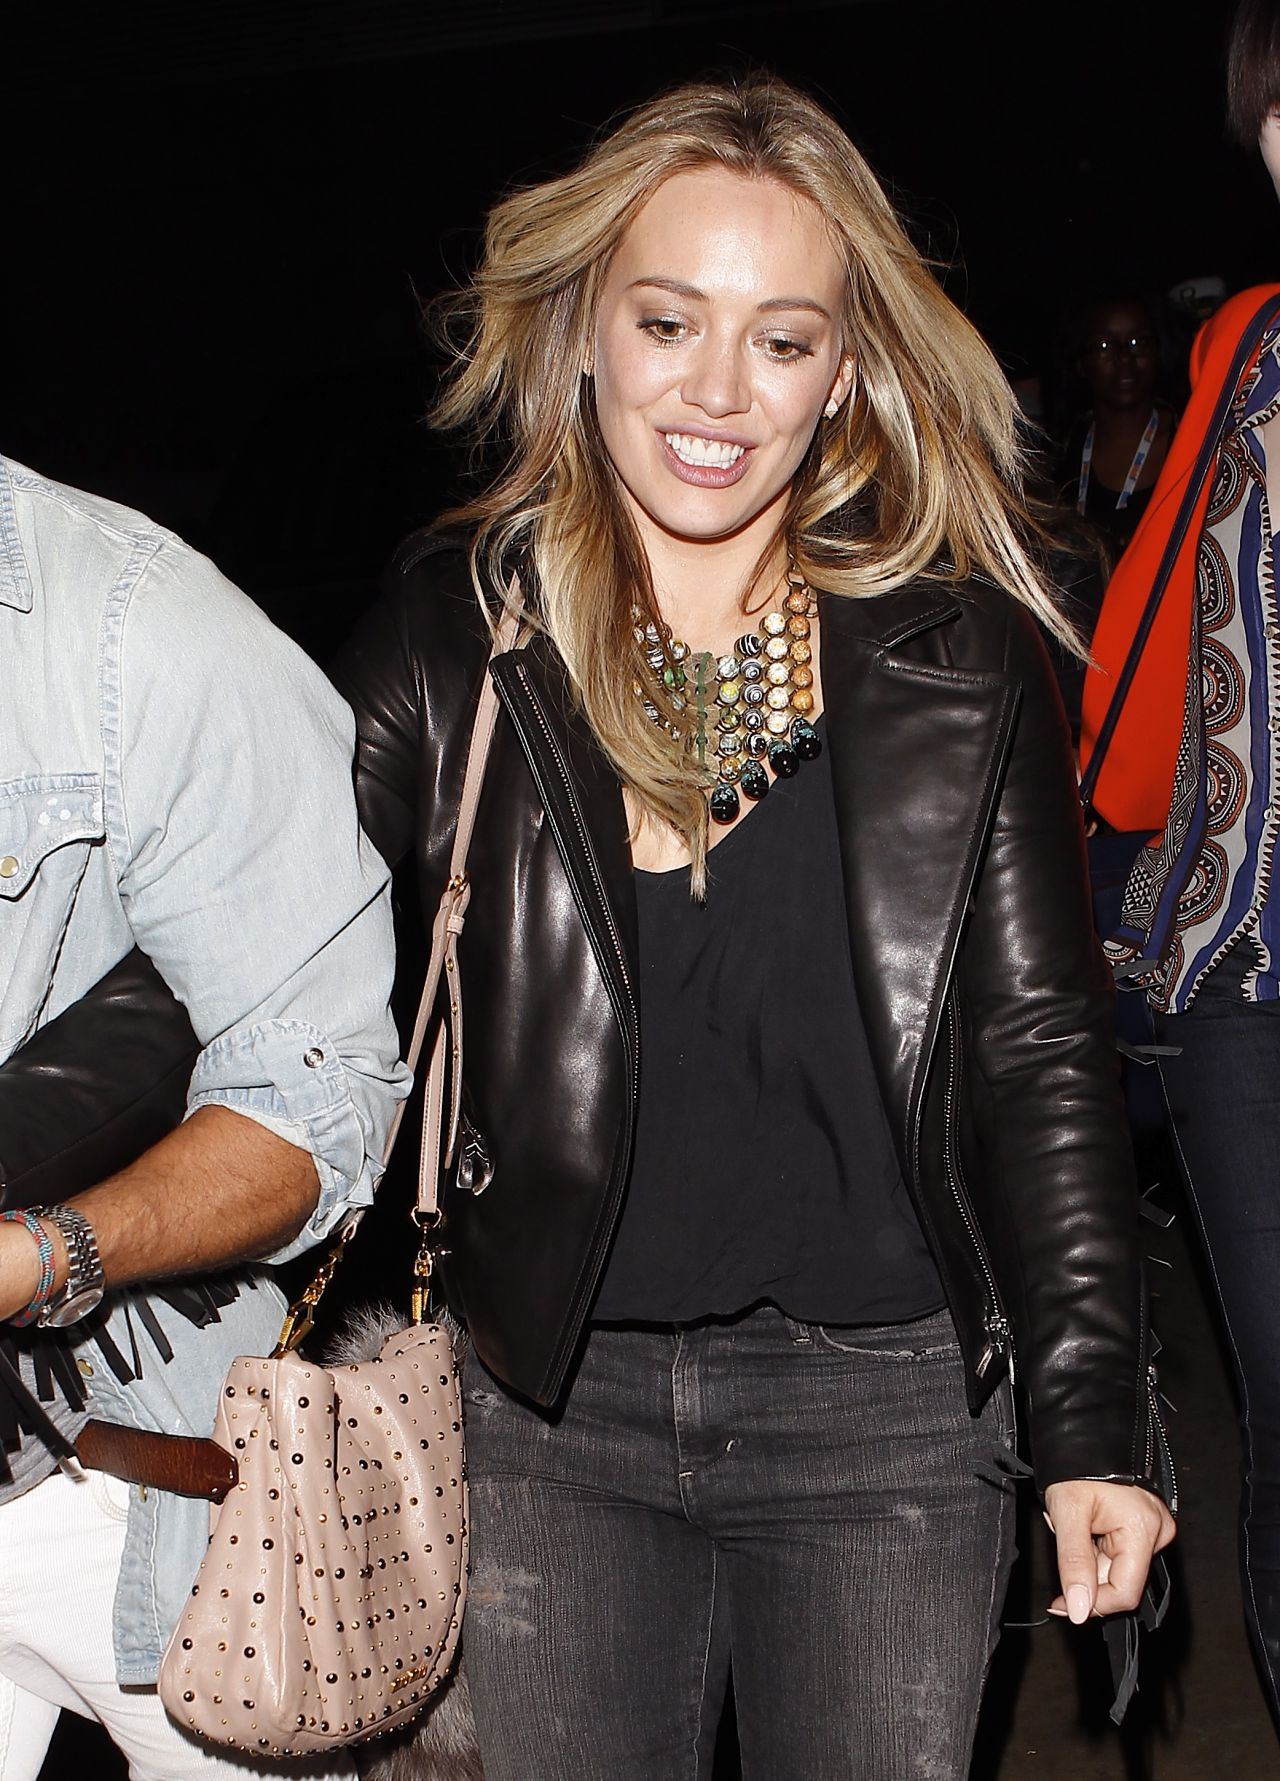 Hilary Duff at the Miley Cyrus Concert - Staples Center in Los Angeles